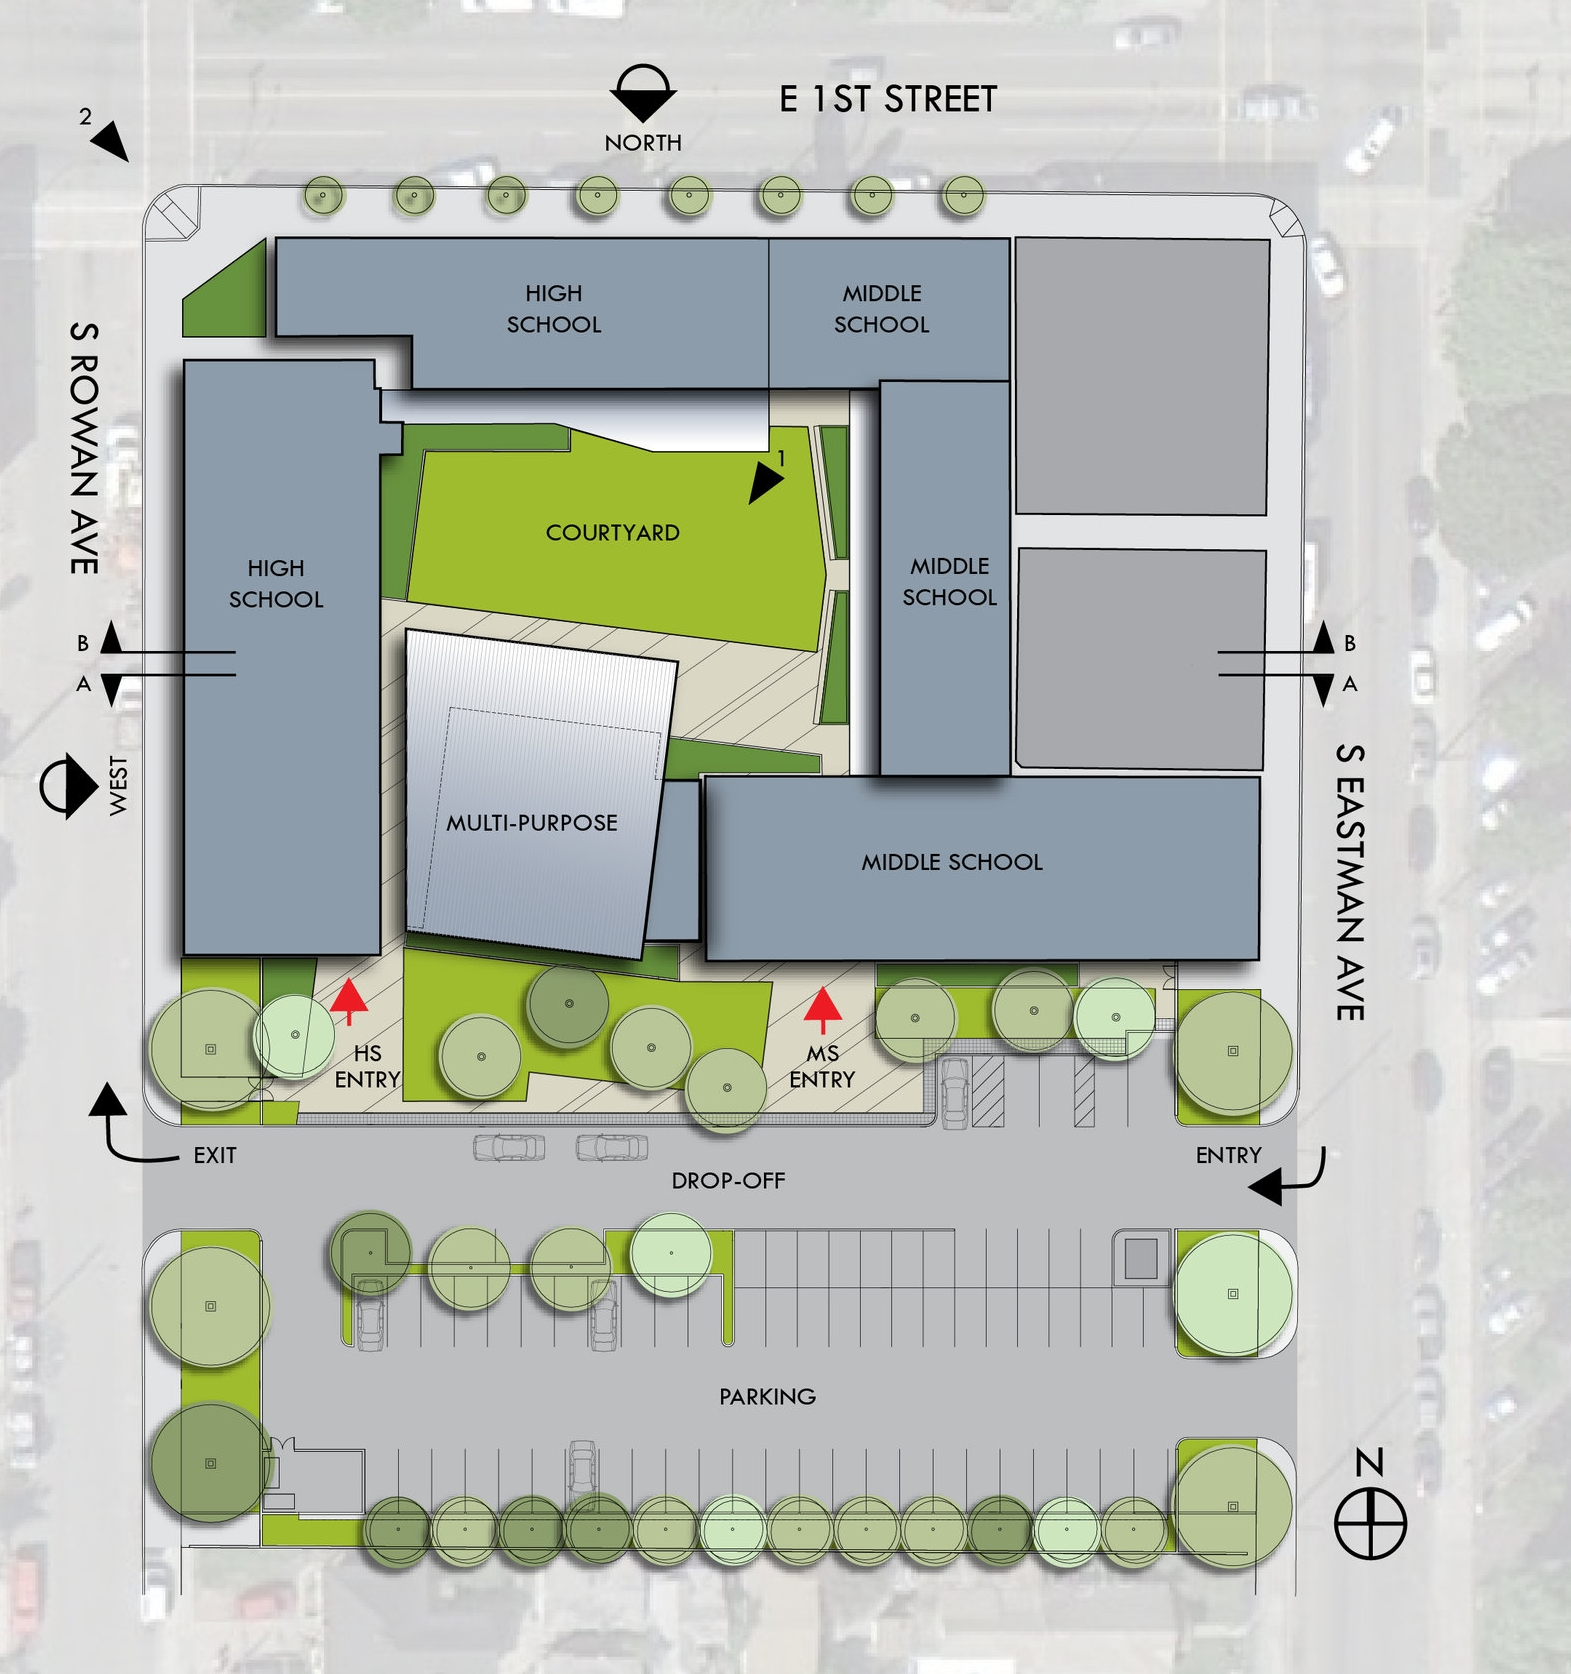 BA_EDU_Alliance_WUF Prize Submission_Site Plan.jpg